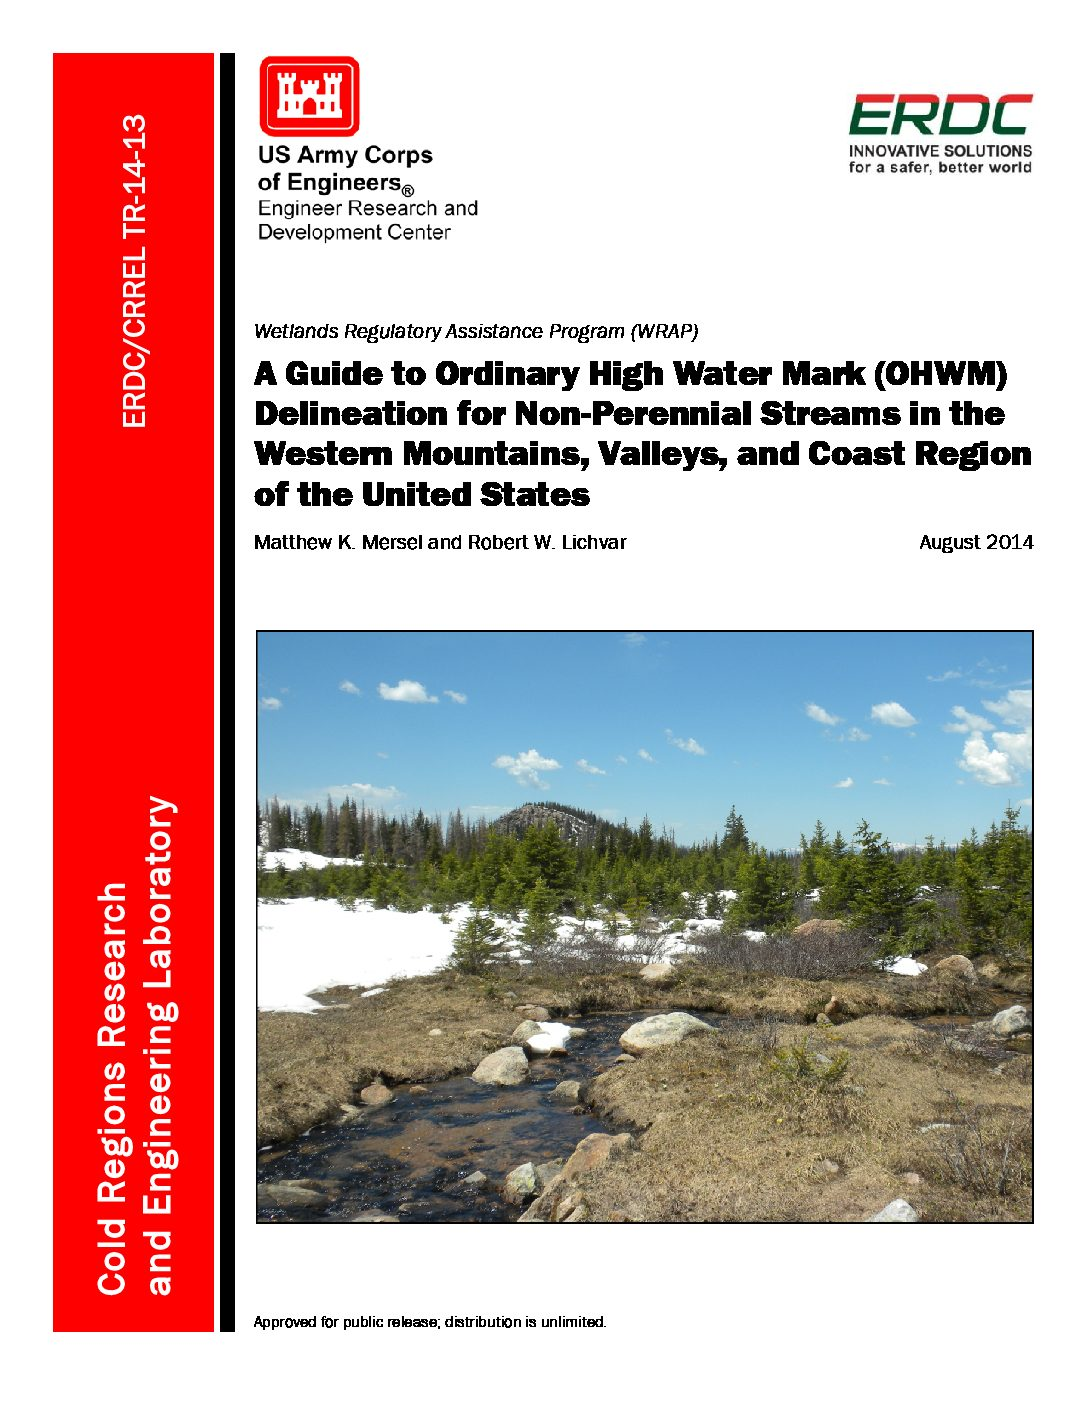 GWX Library – Groundwater Exchange